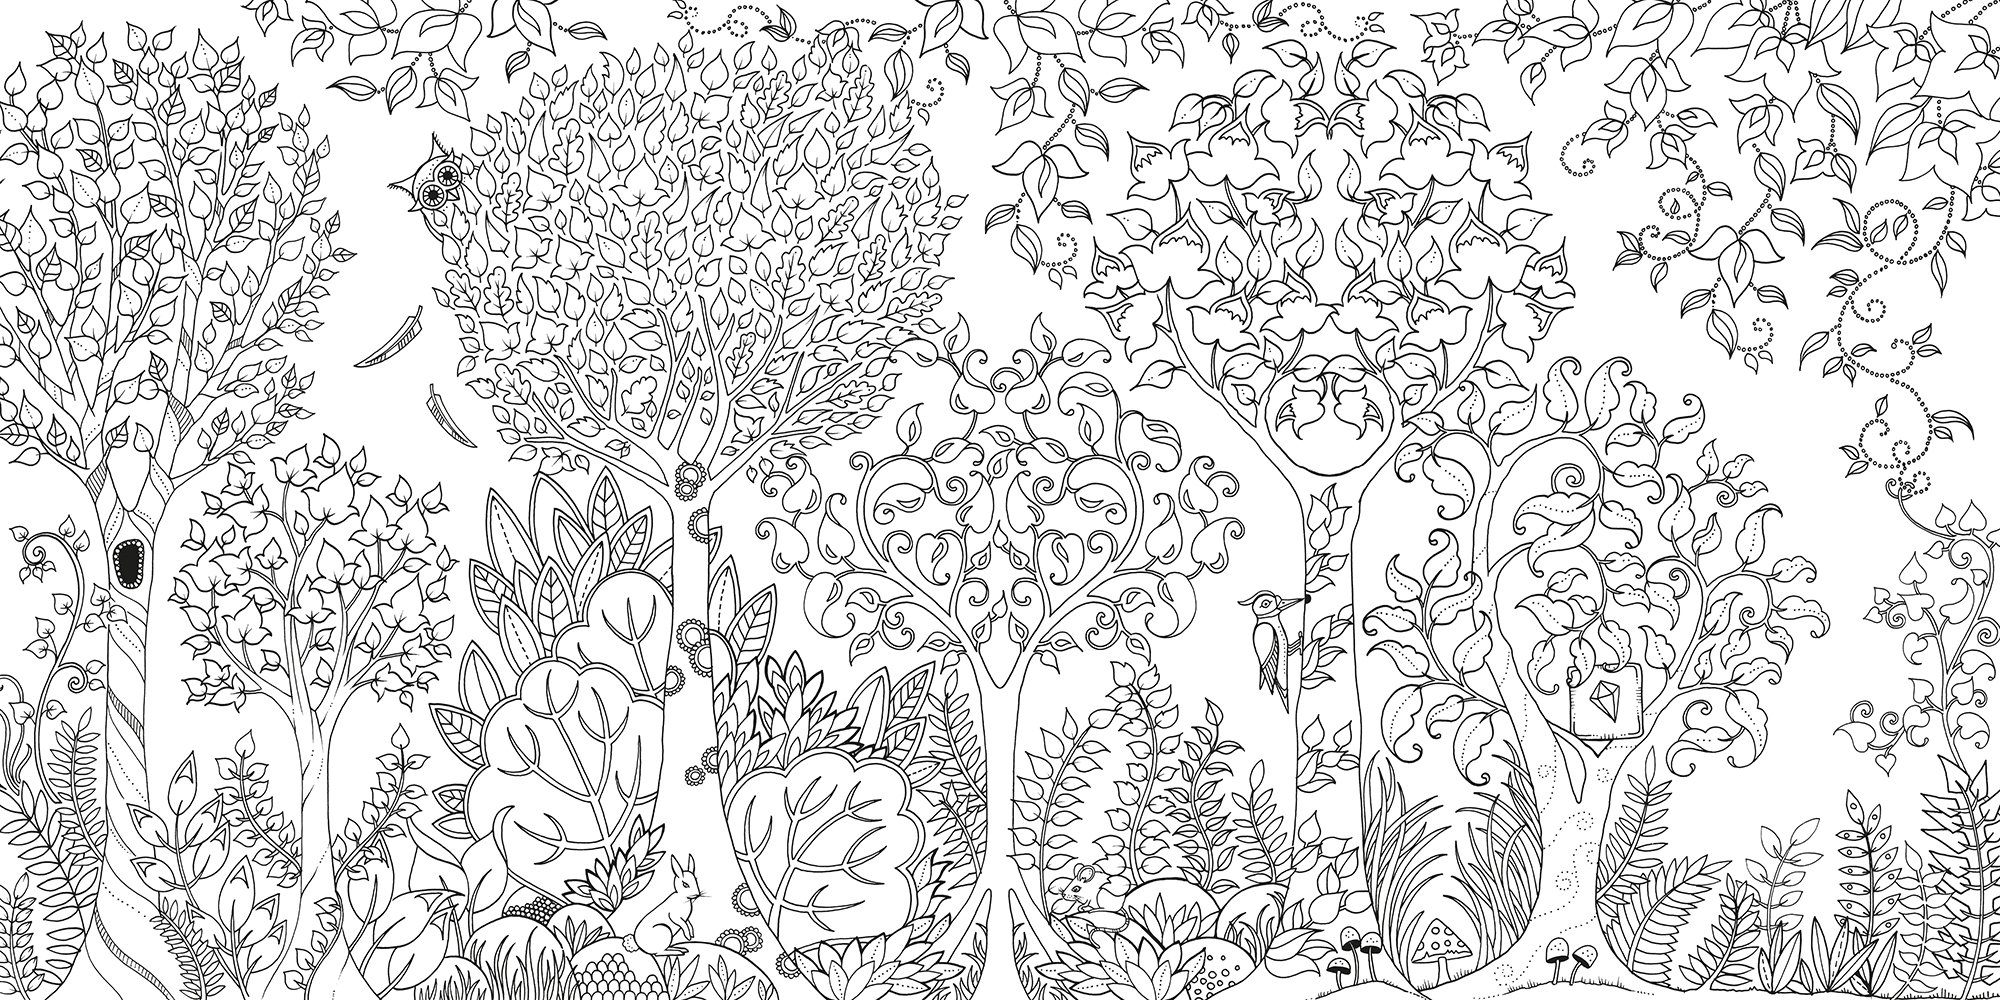 A fun magic coloring book amazon - Amazon Com Enchanted Forest An Inky Quest Coloring Book 6063887956574 Johanna Basford Books